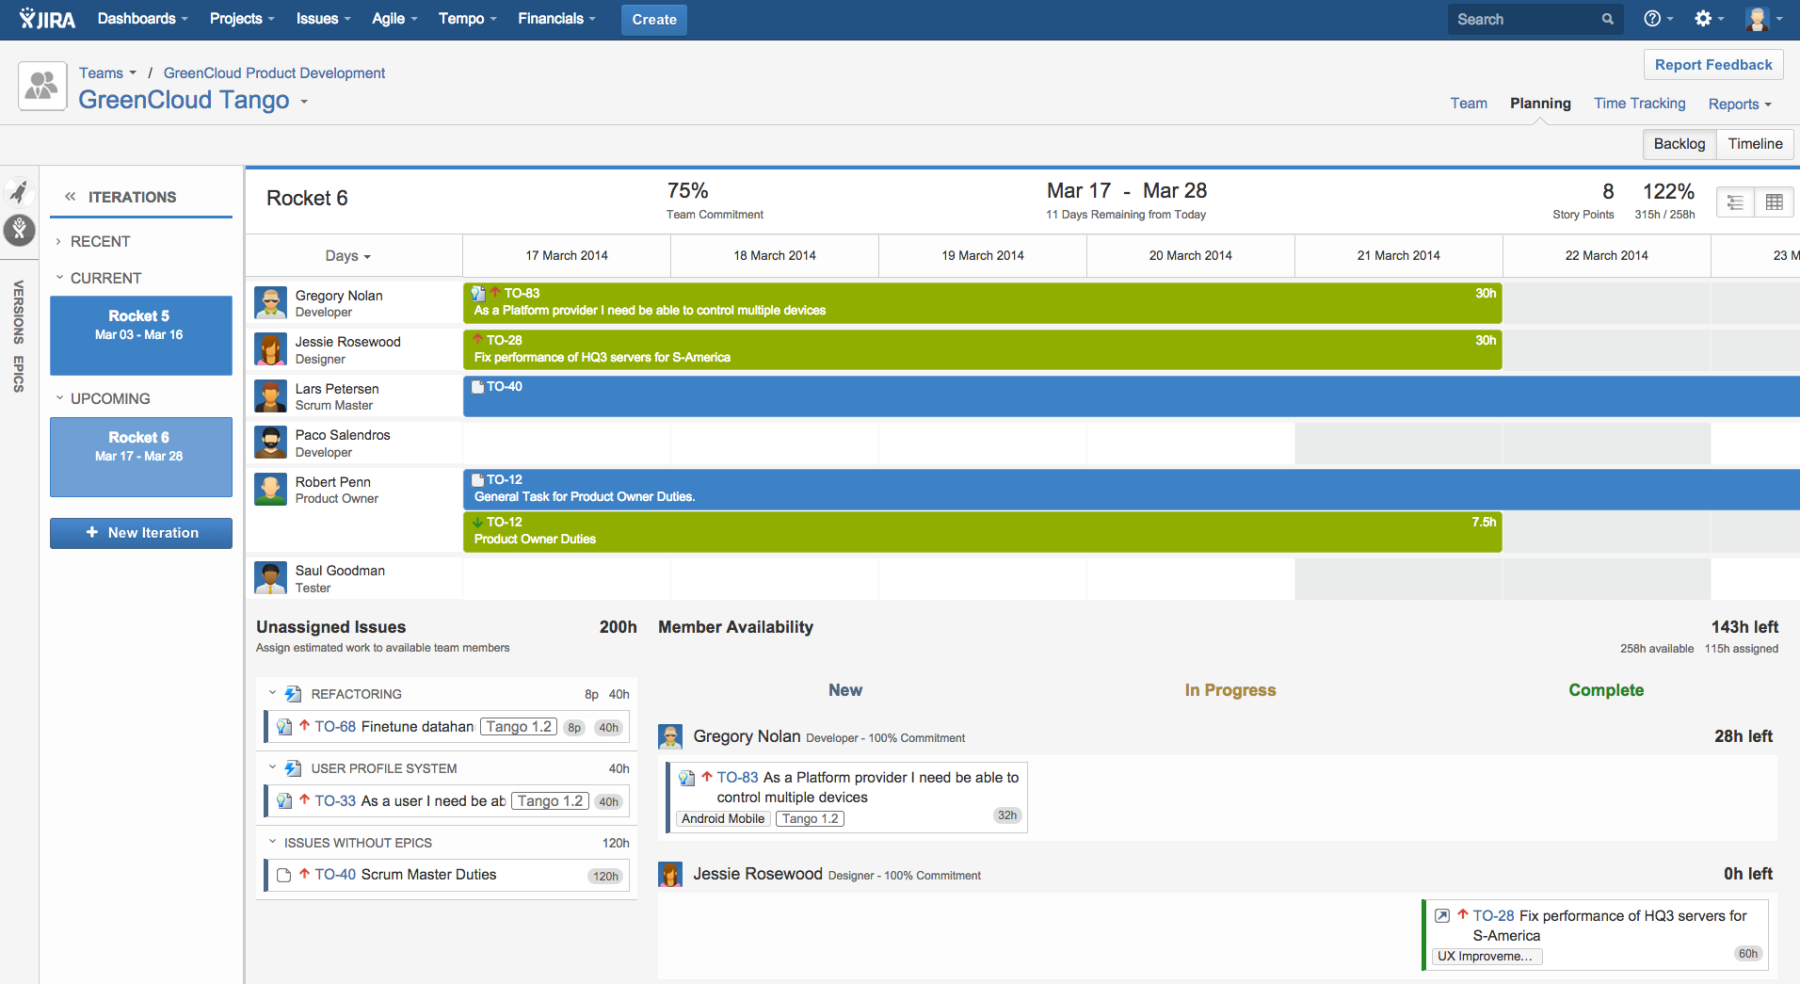 A view of the Iteration Timeline in the Team Backlog of Tempo Planner